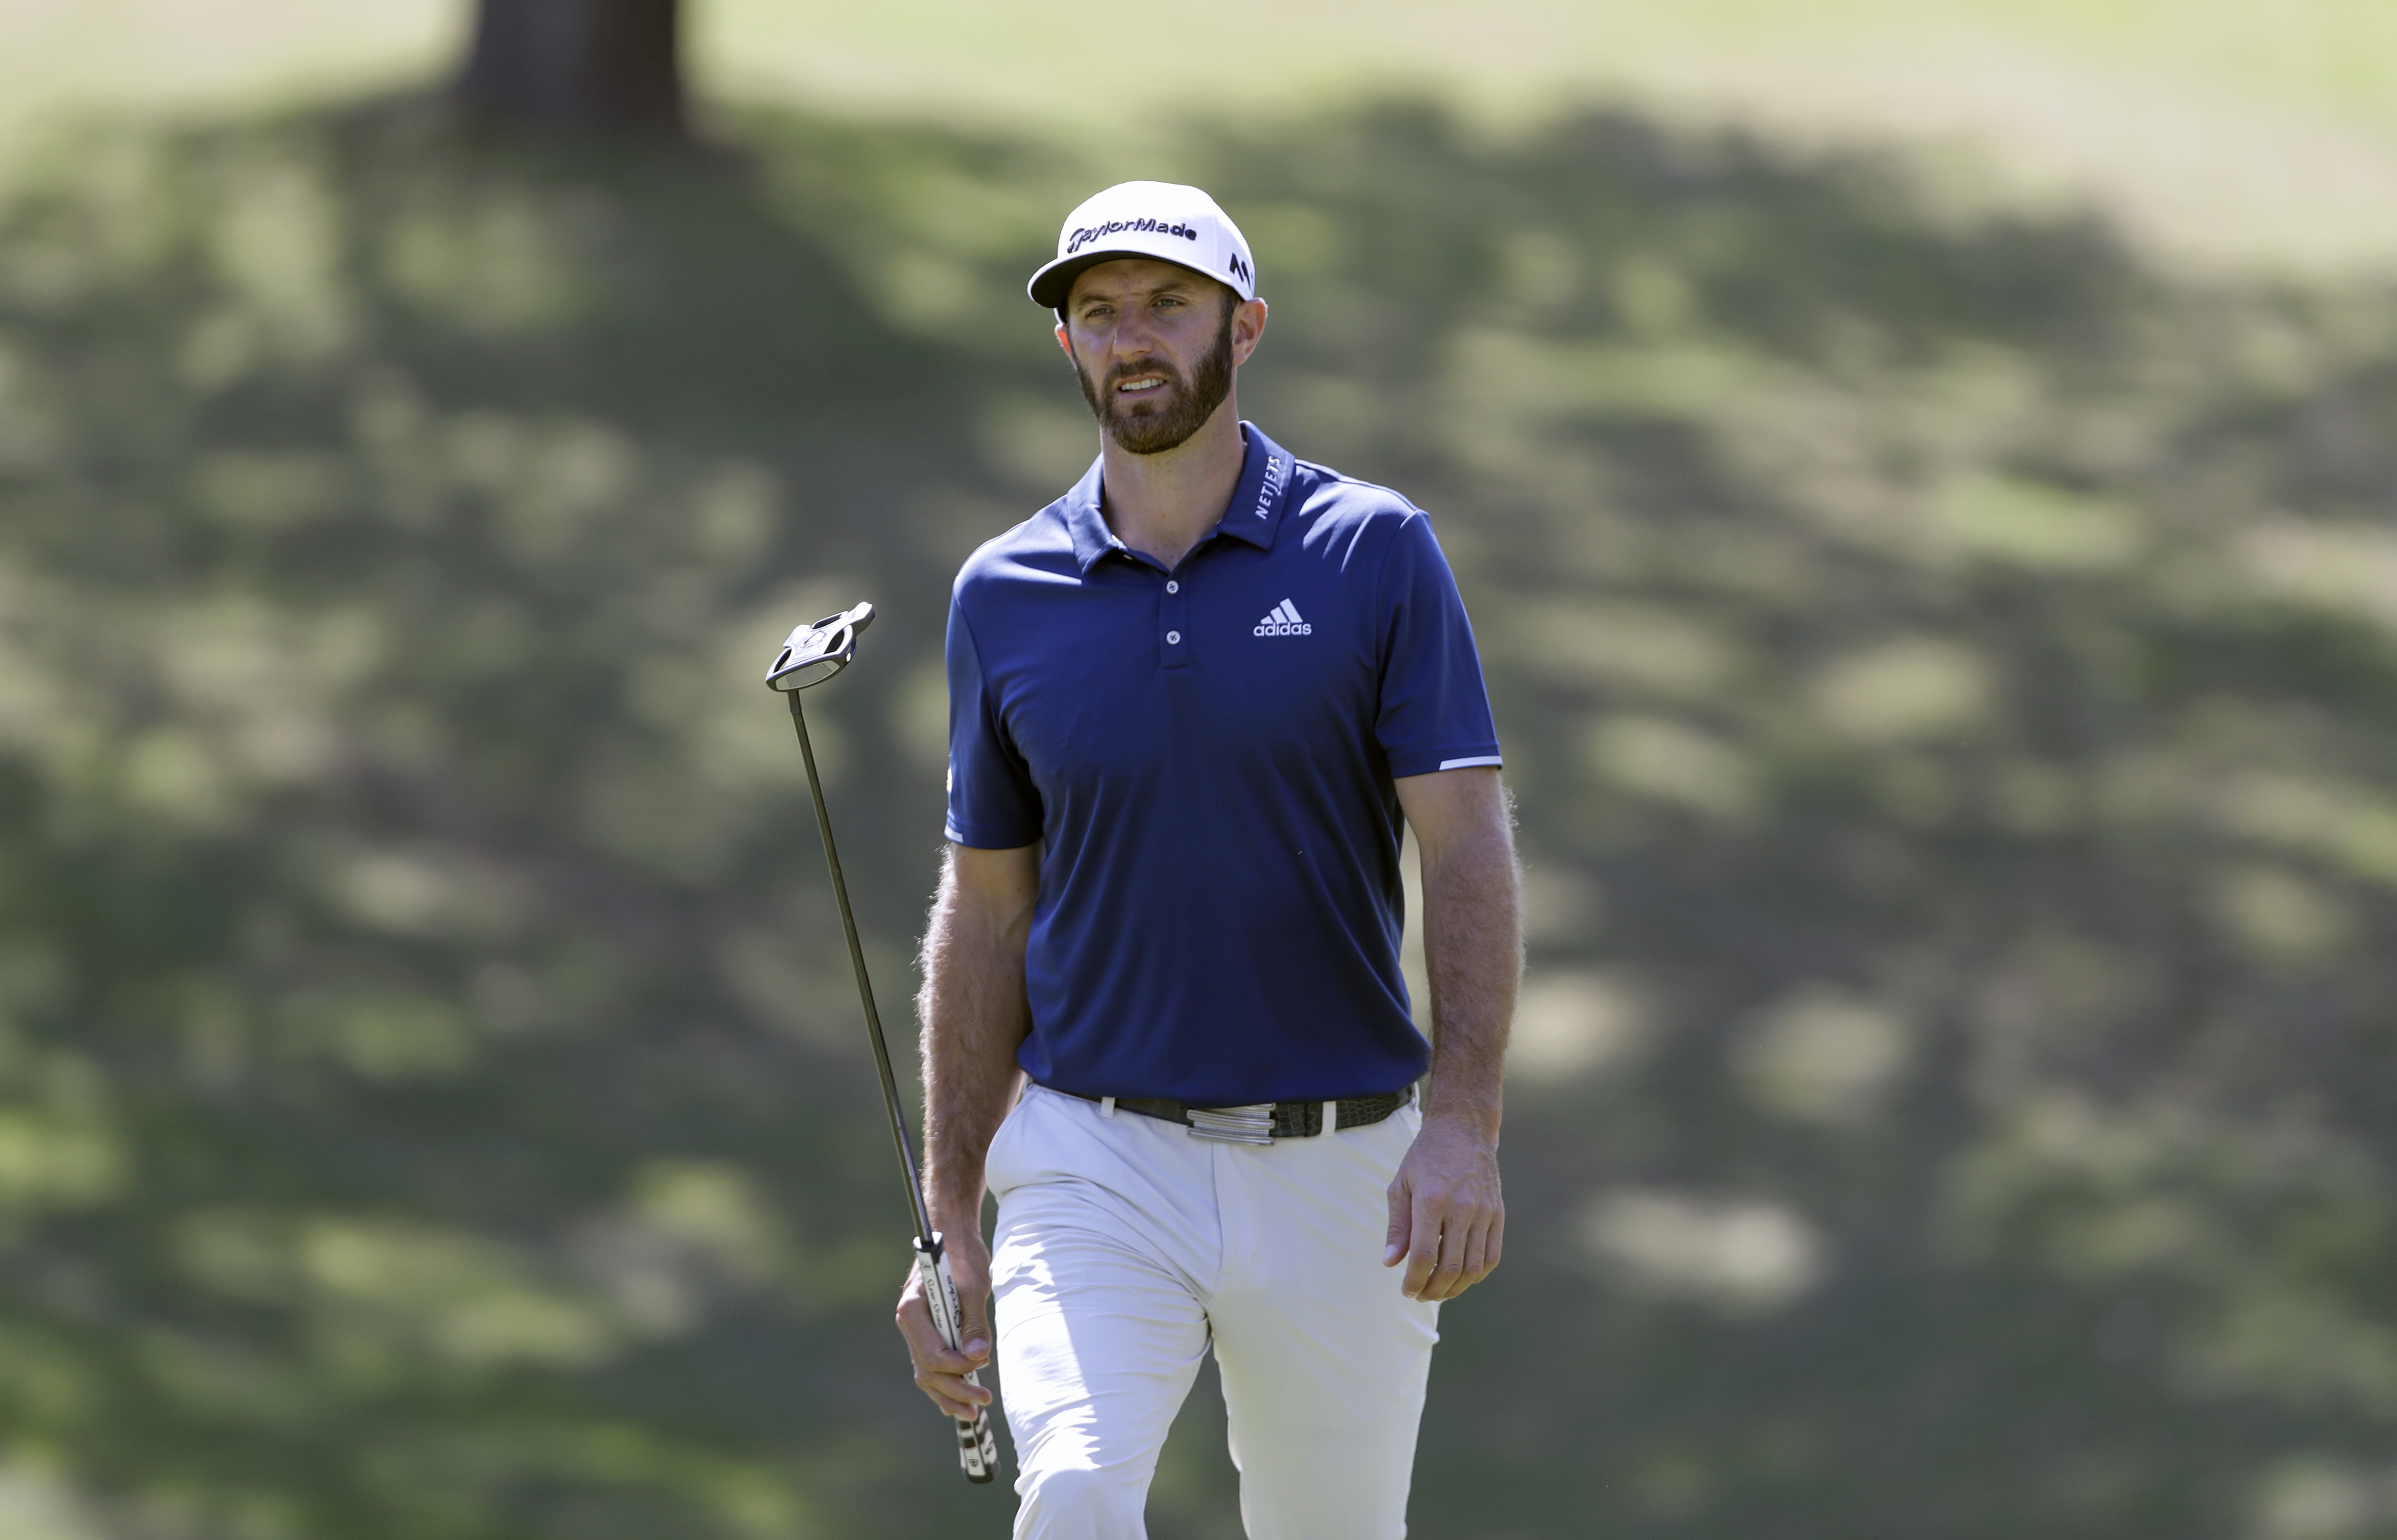 Dustin Johnson walks to the 18th green during a practice round for the Dell Match Play Championship golf tournament at Austin County Club, Tuesday, March 21, 2017, in Austin, Texas. (AP Photo/Eric Gay)